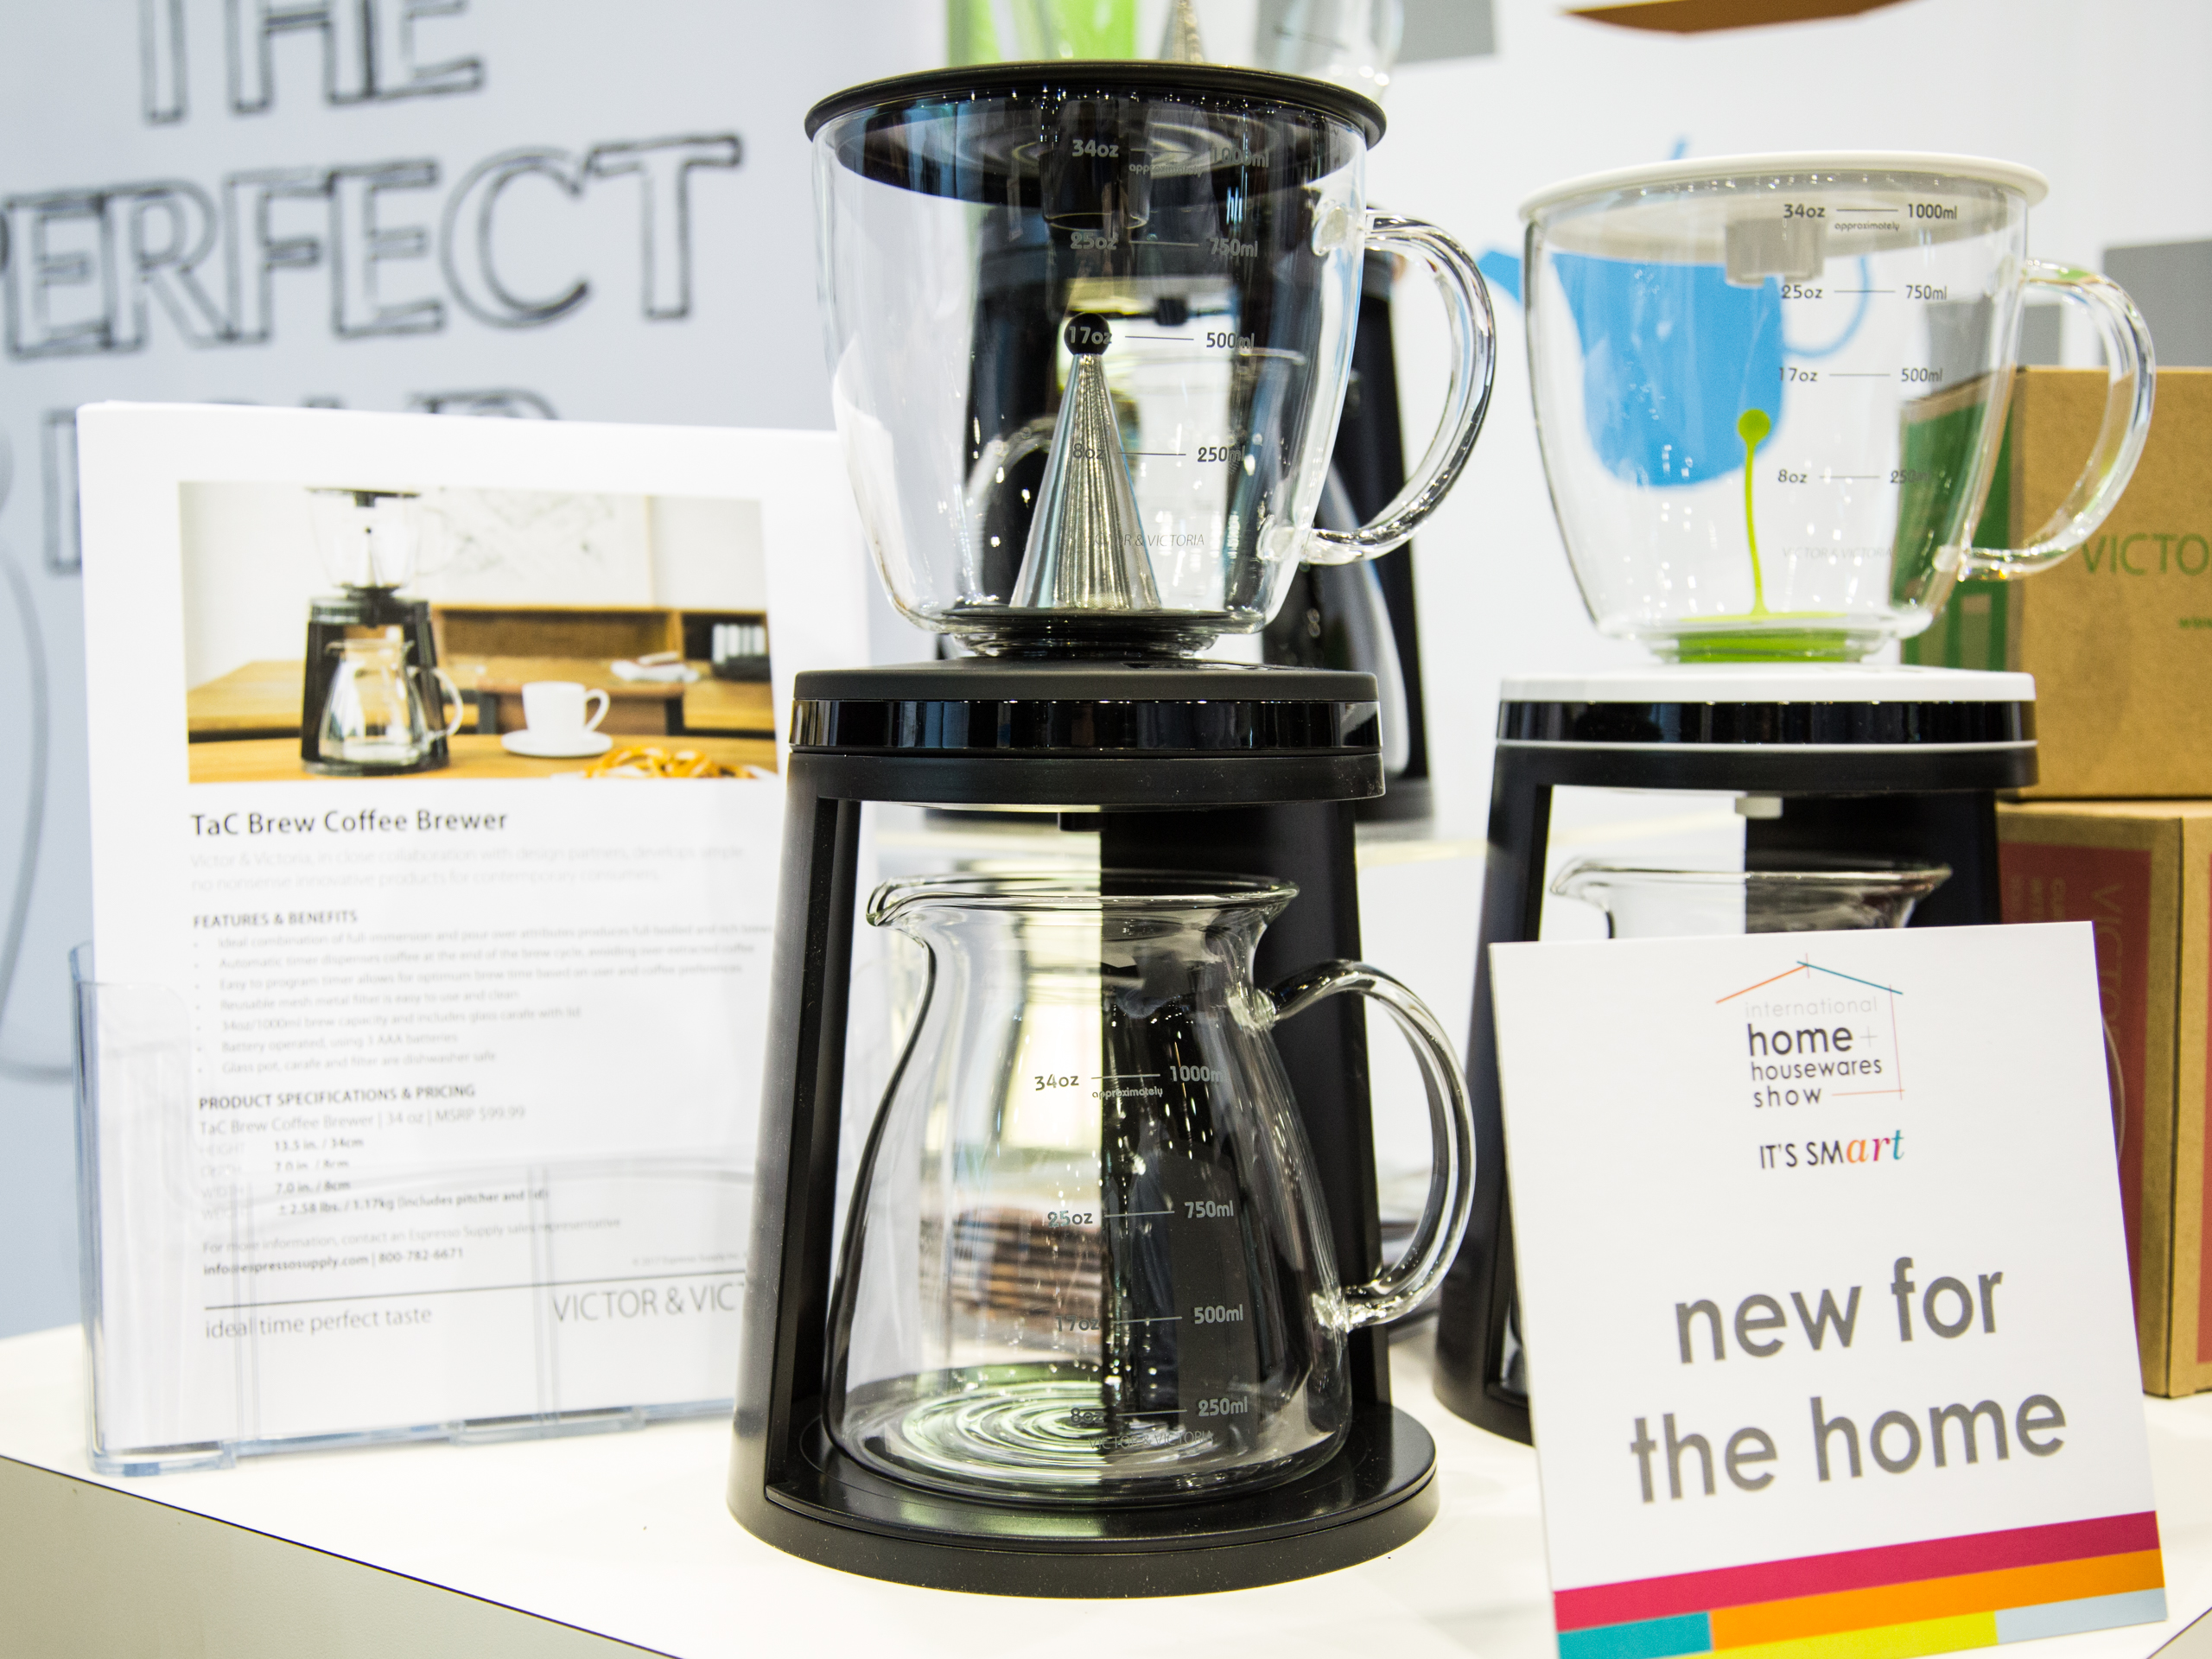 TaC Brew Coffee Brewer